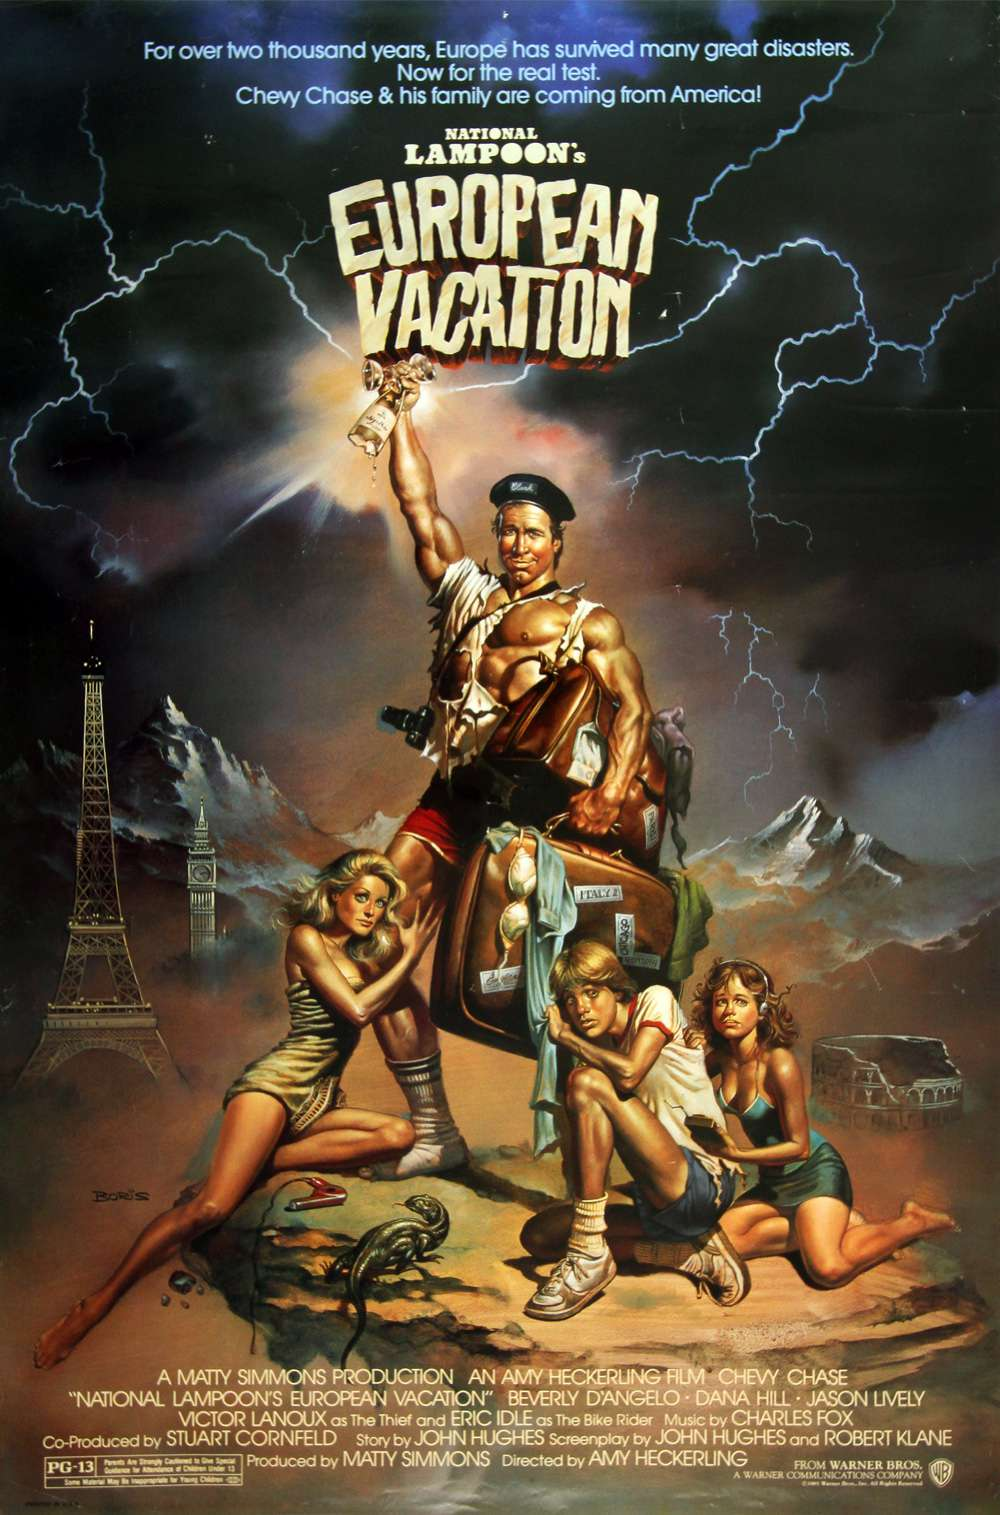 Poster for National Lampoon's European Vacation (1985)